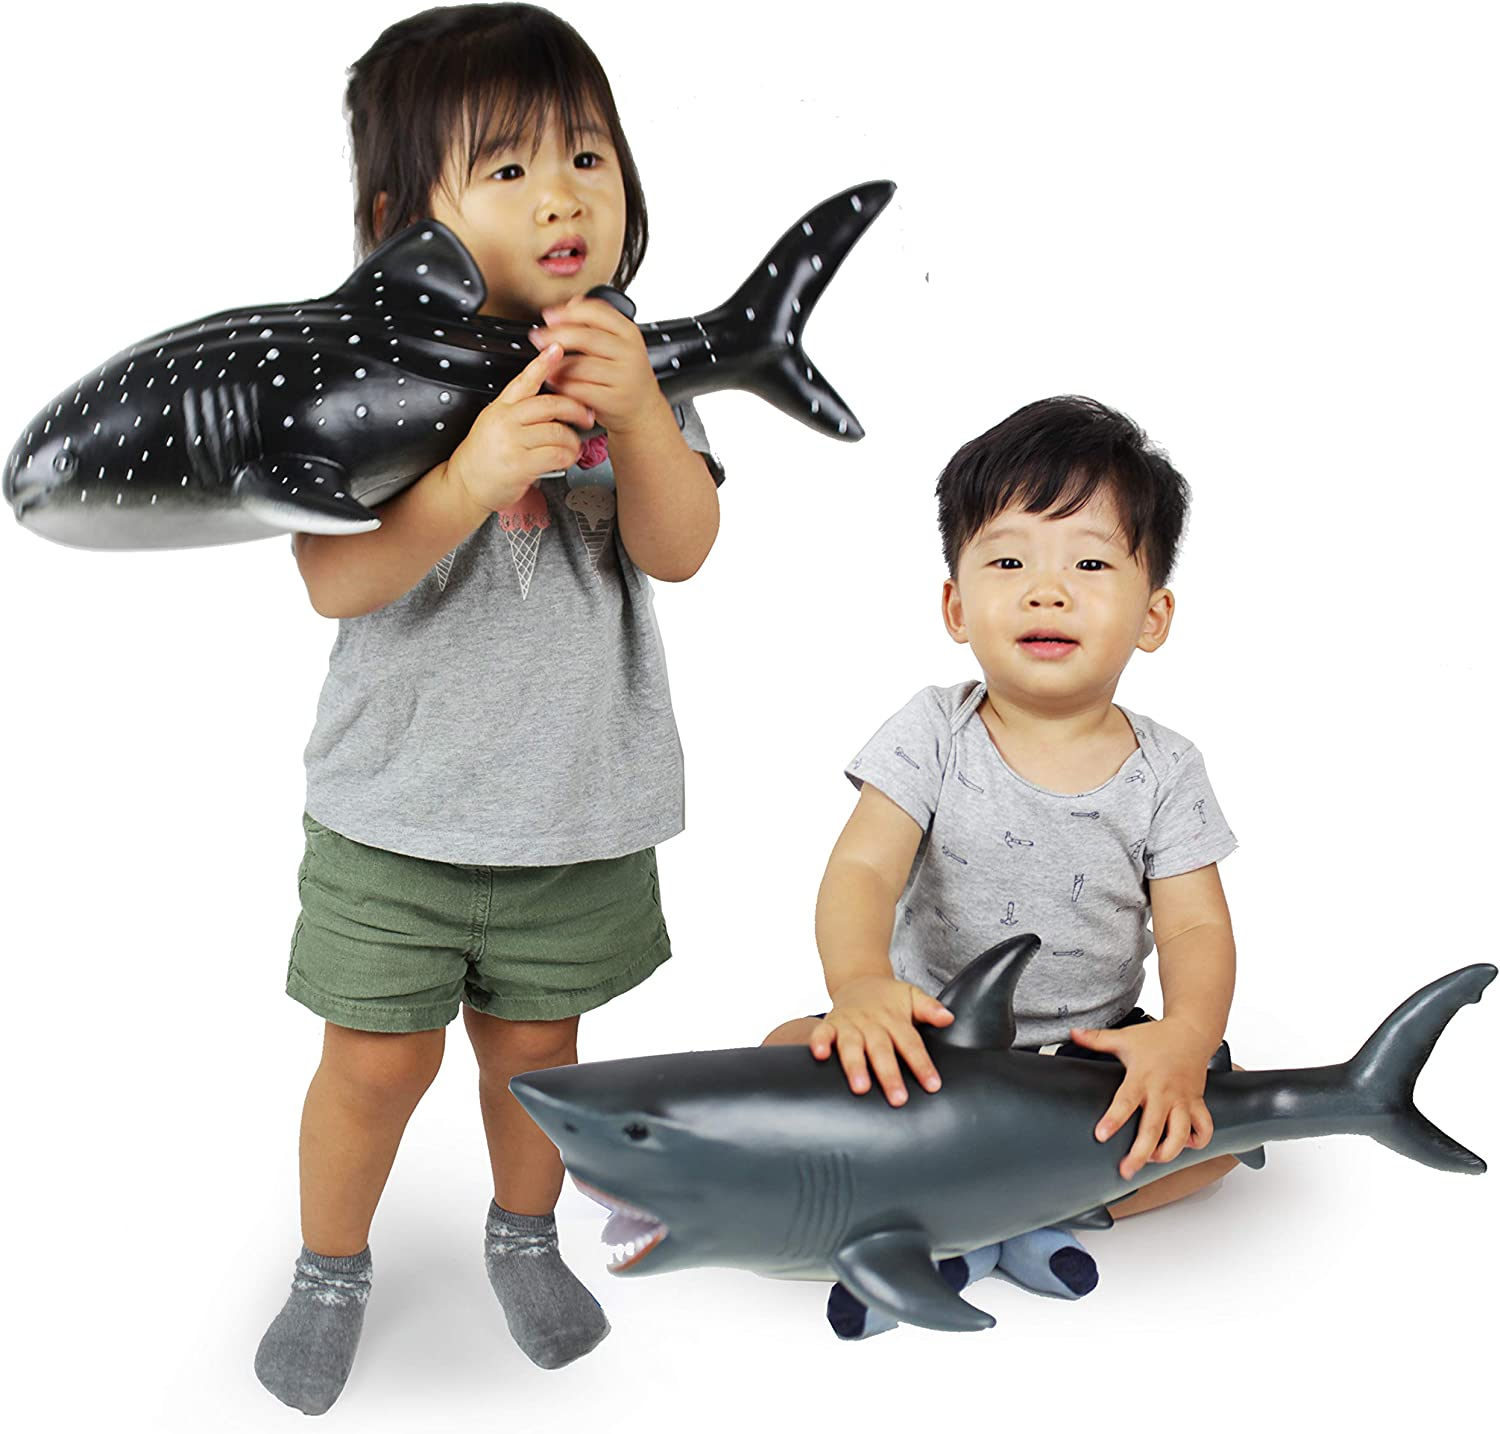 Boley 2 Piece Soft Shark Figure Toys - Realistic Jumbo Large Ocean Whale and Great White Shark - Educational Ocean Creature Toys for Kids, Children, Toddlers